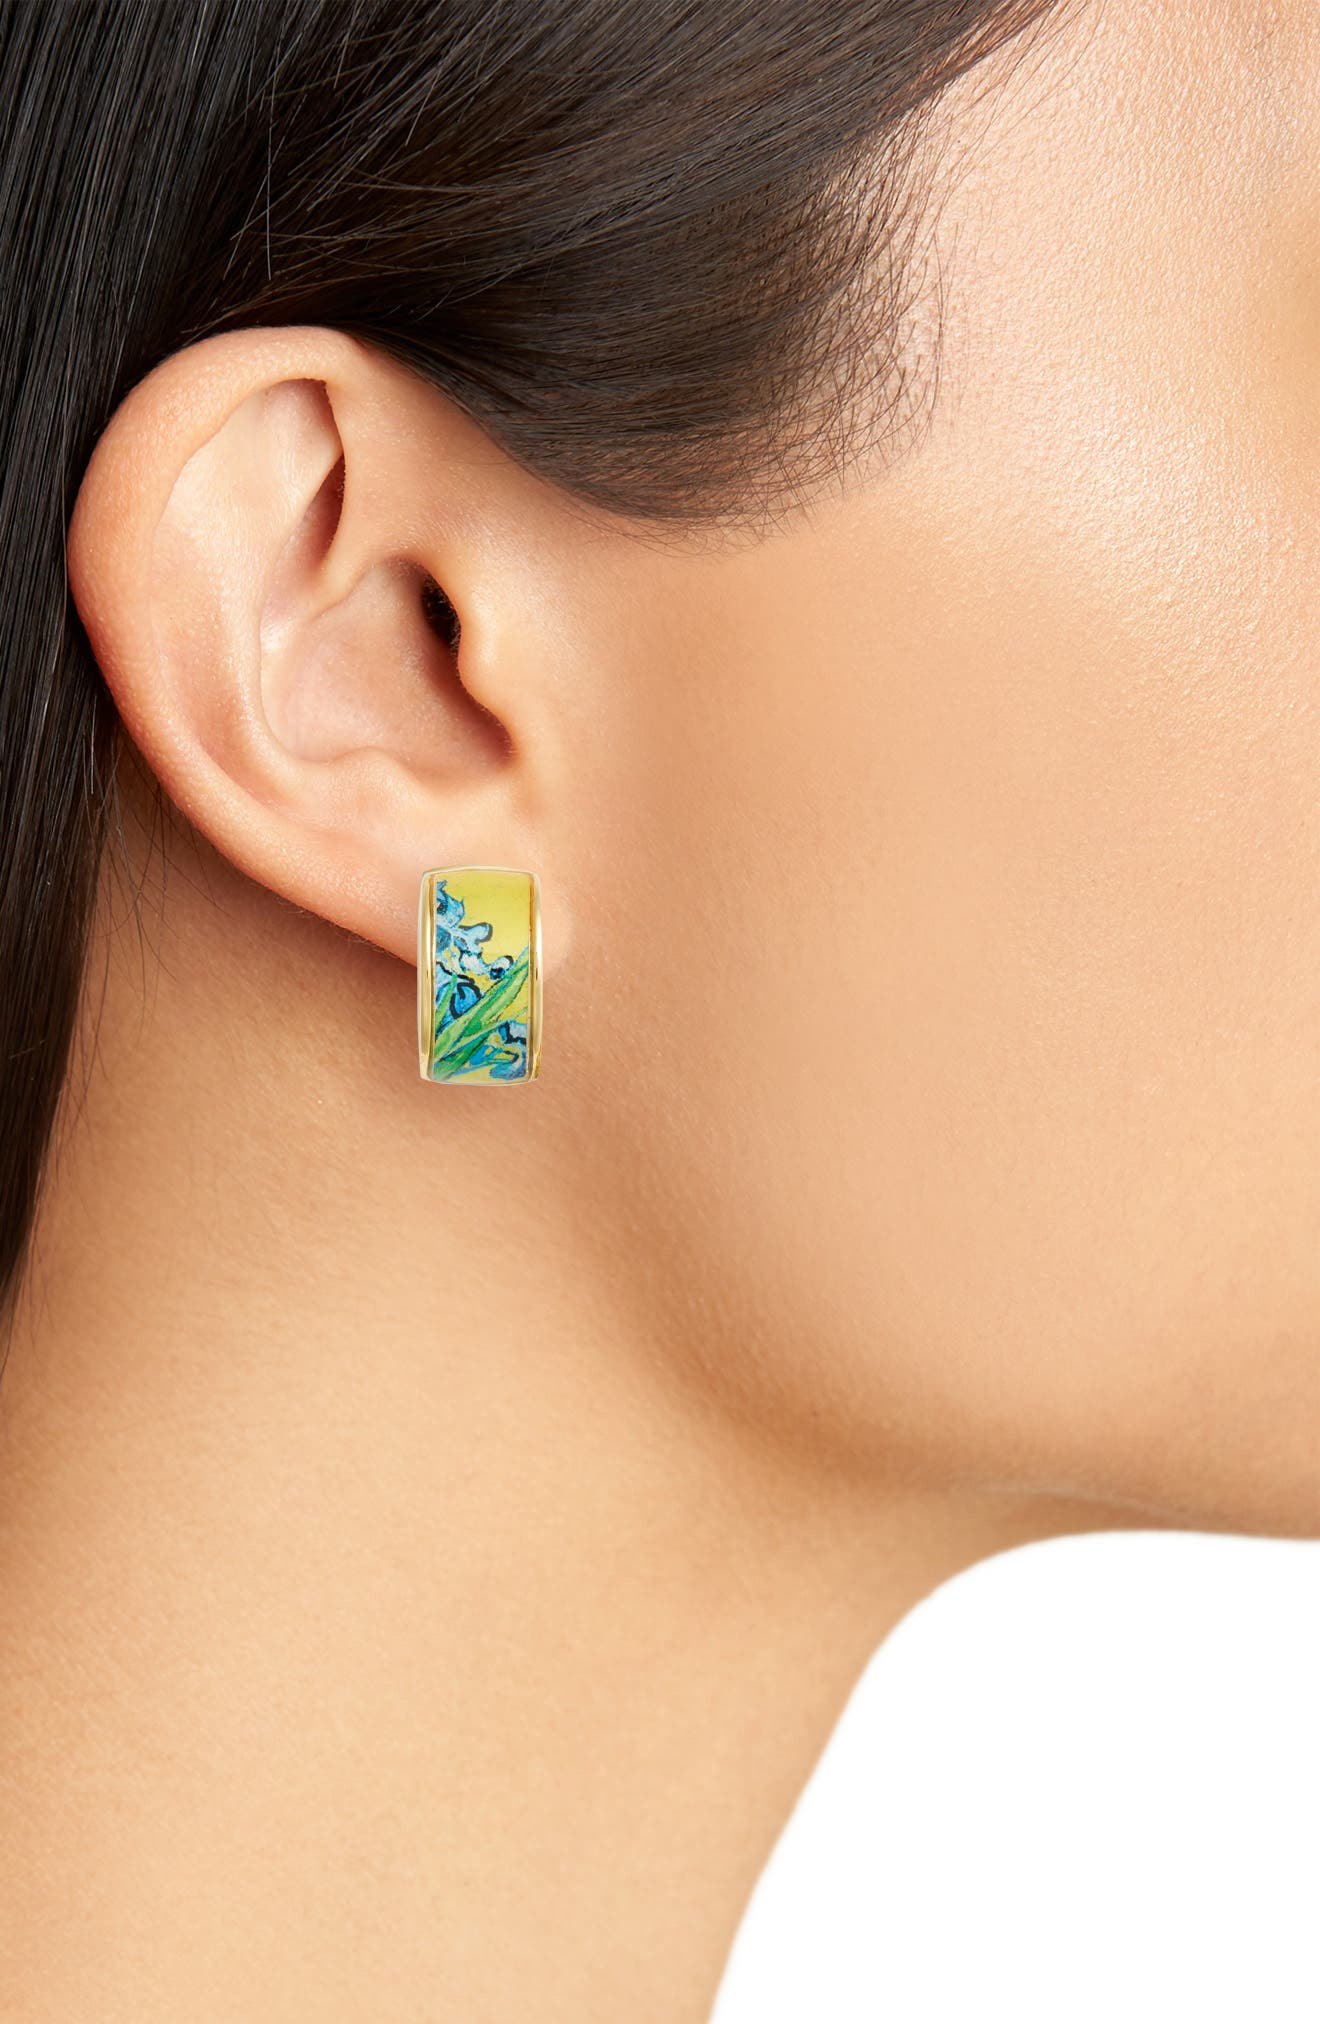 Irises Earrings,                             Alternate thumbnail 2, color,                             YELLOW/ GOLD